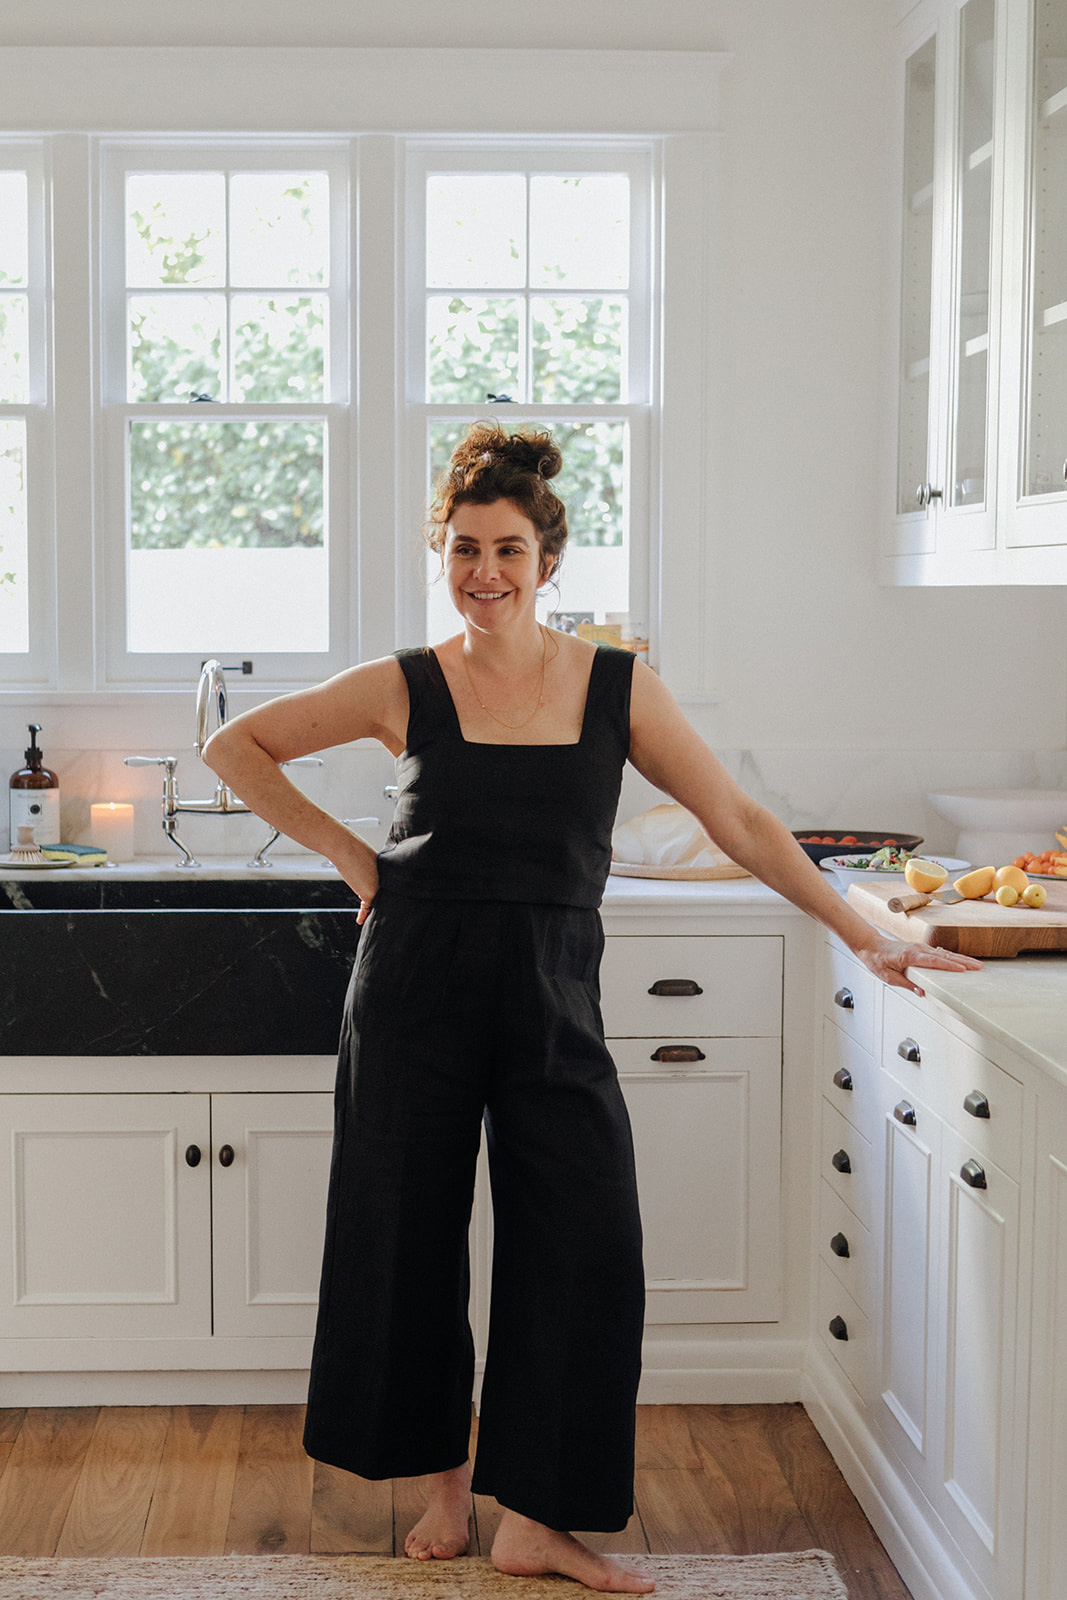 leanne citrone standing in her kitchen